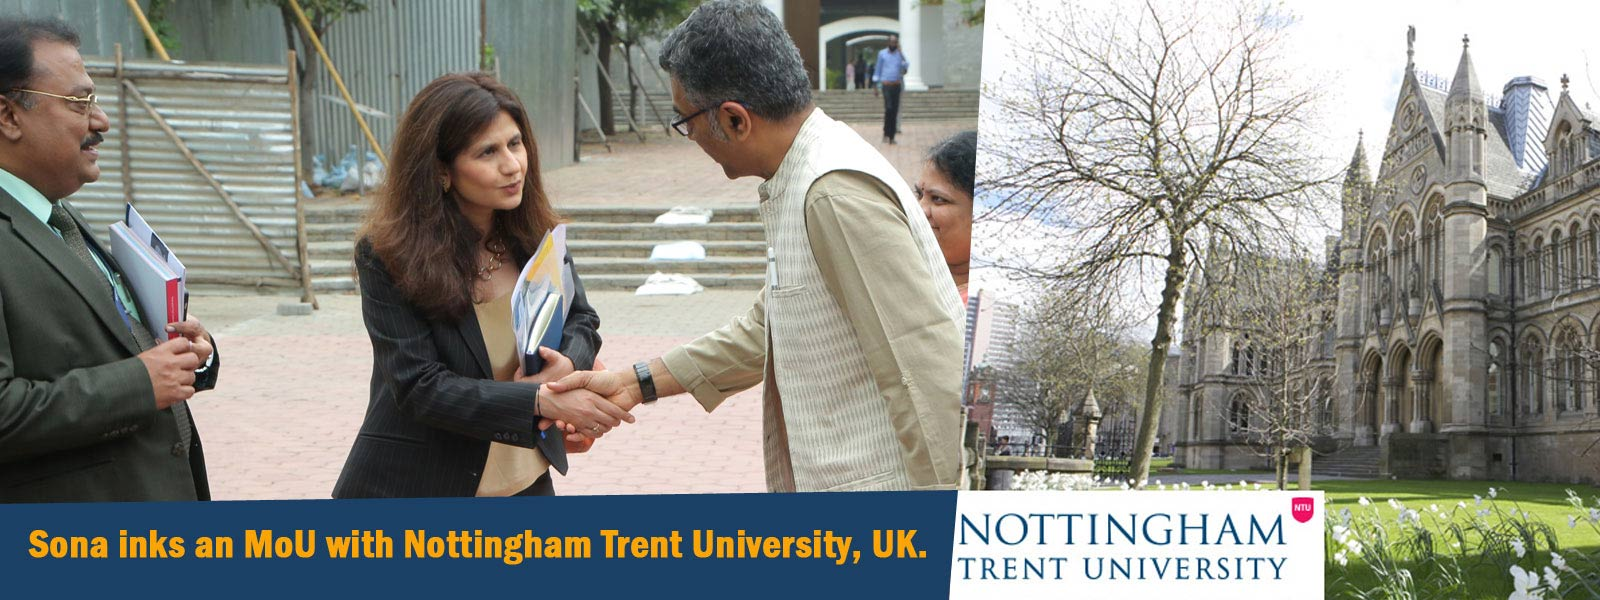 Sona inks an MoU with Nottingham Trent University,UK.